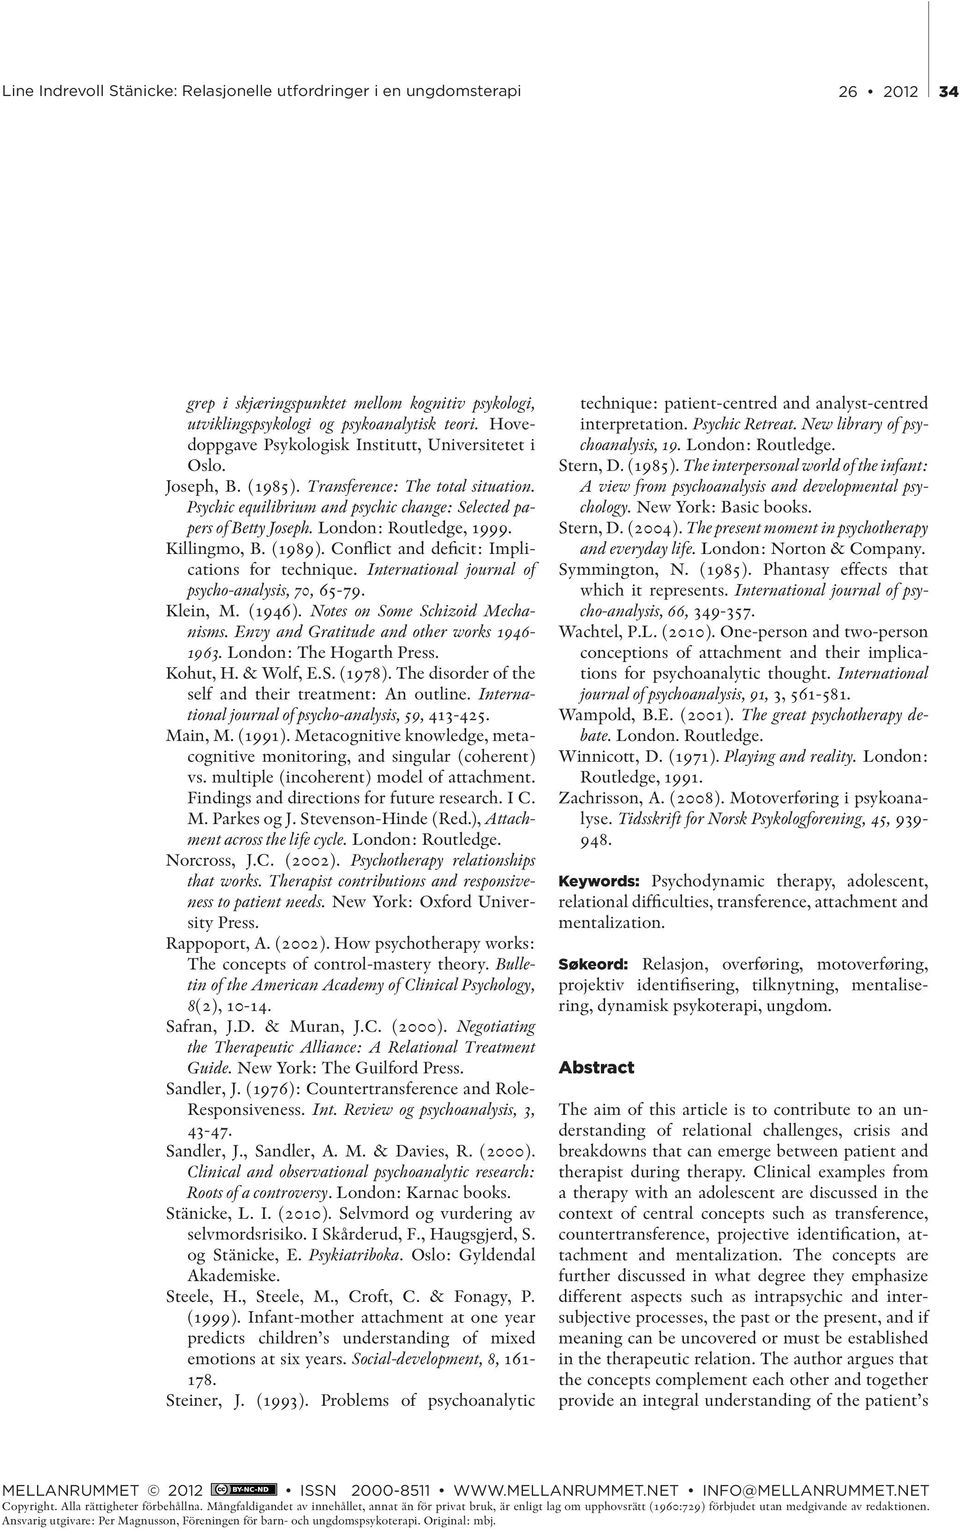 Conflict and deficit: Implications for technique. International journal of psycho-analysis, 70, 65-79. Klein, M. (1946). Notes on Some Schizoid Mechanisms.